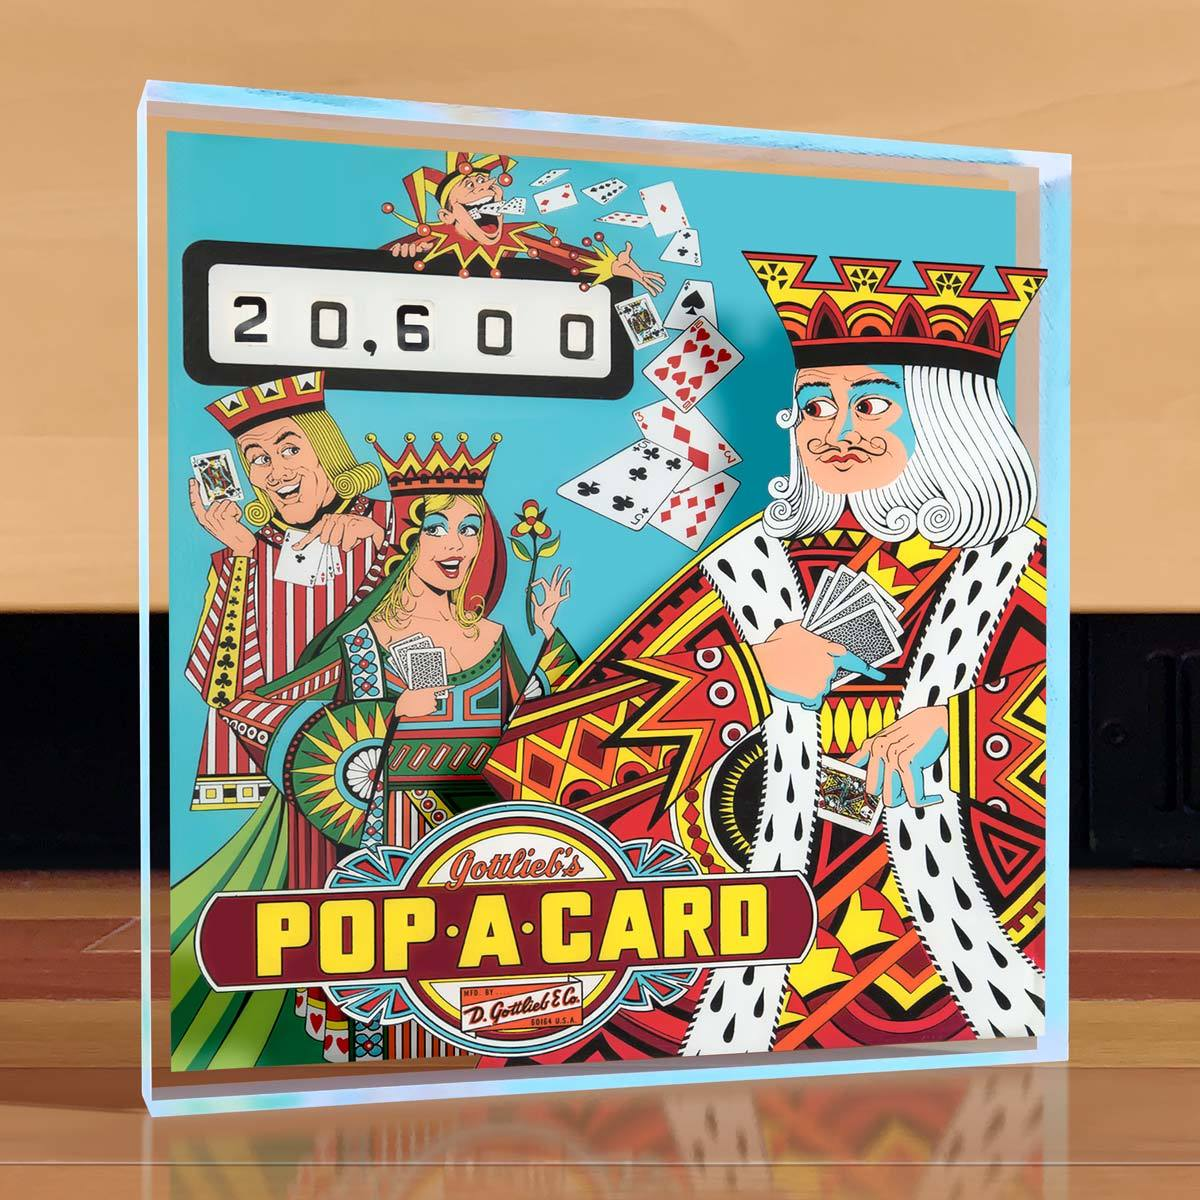 Pop-a-Card Pinball Desktop Art